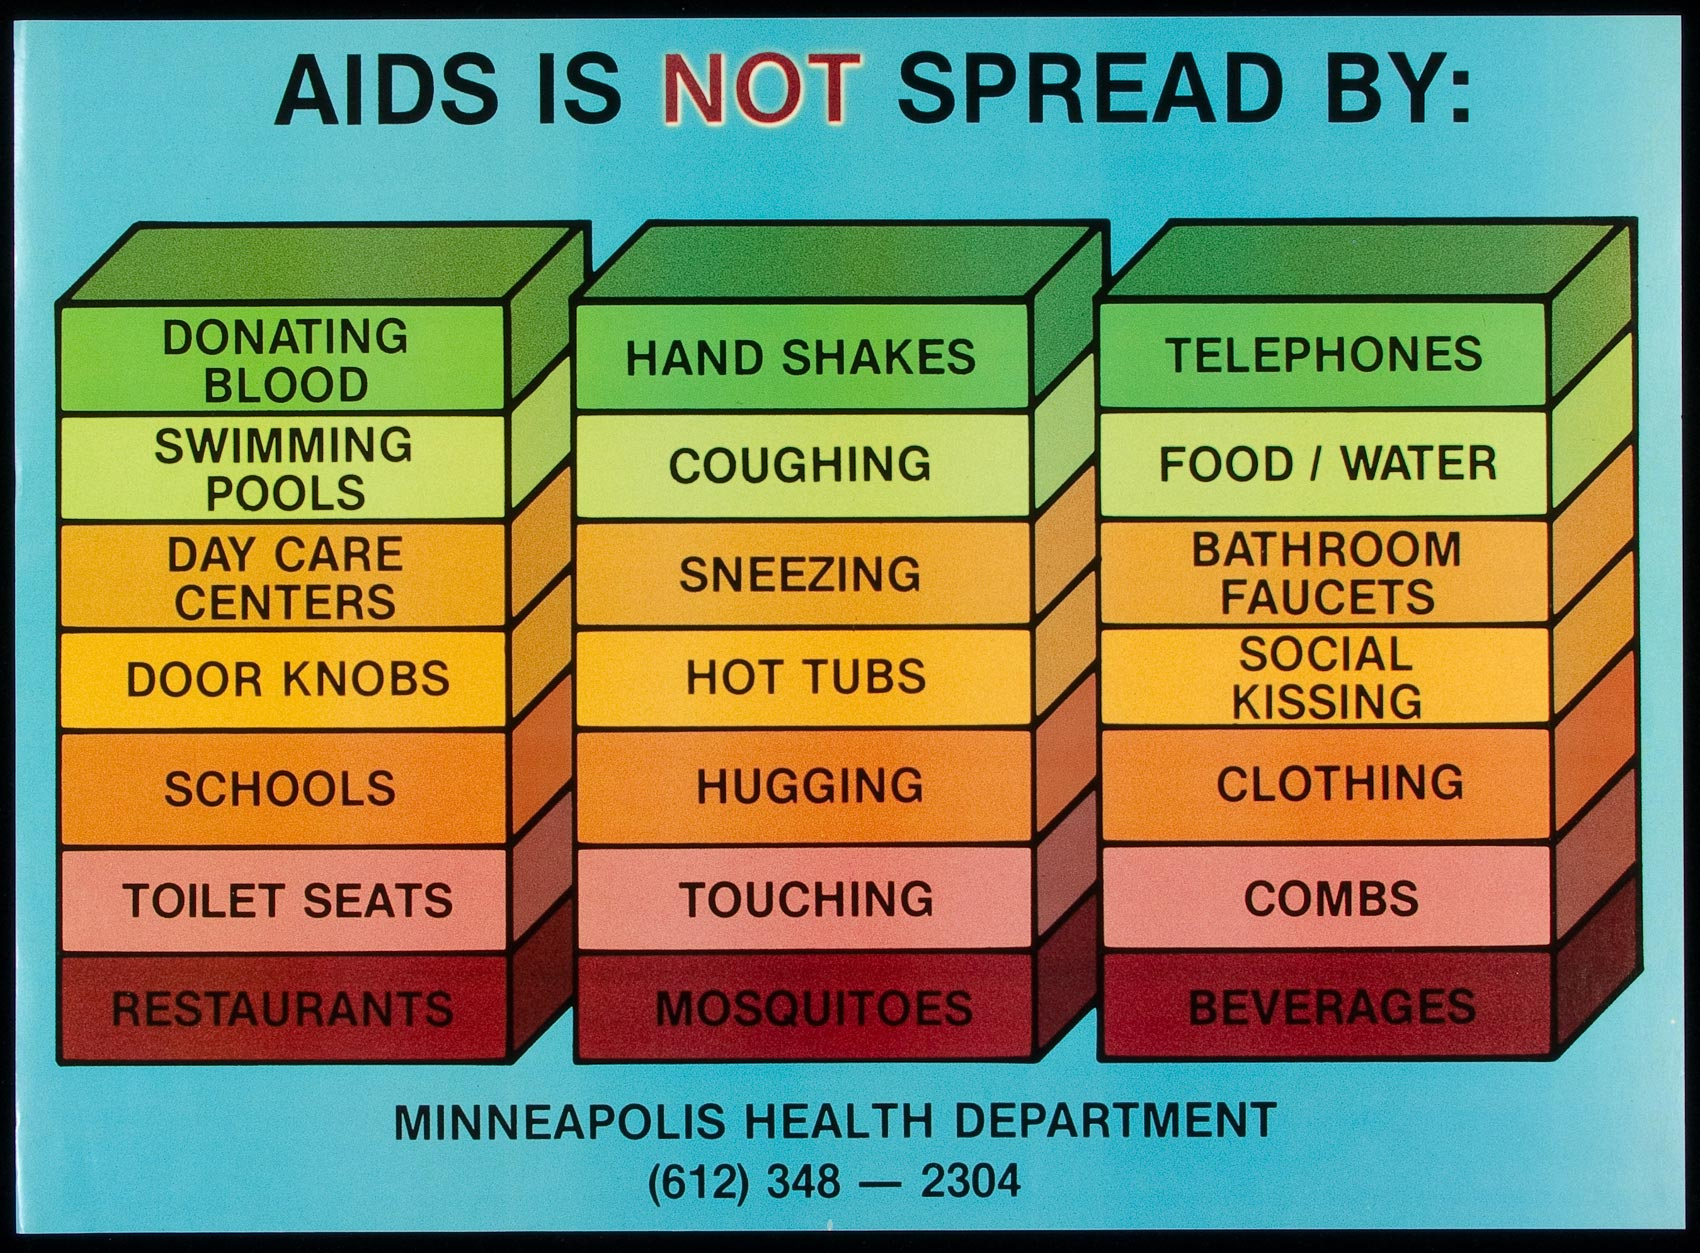 """the spread of aids On september 24, cdc uses the term """"aids"""" (acquired immune deficiency syndrome) for the first time,  declaration, the united nations adopts the millennium development goals, which include a specific goal of reversing the spread of hiv/aids, malaria, and tb."""